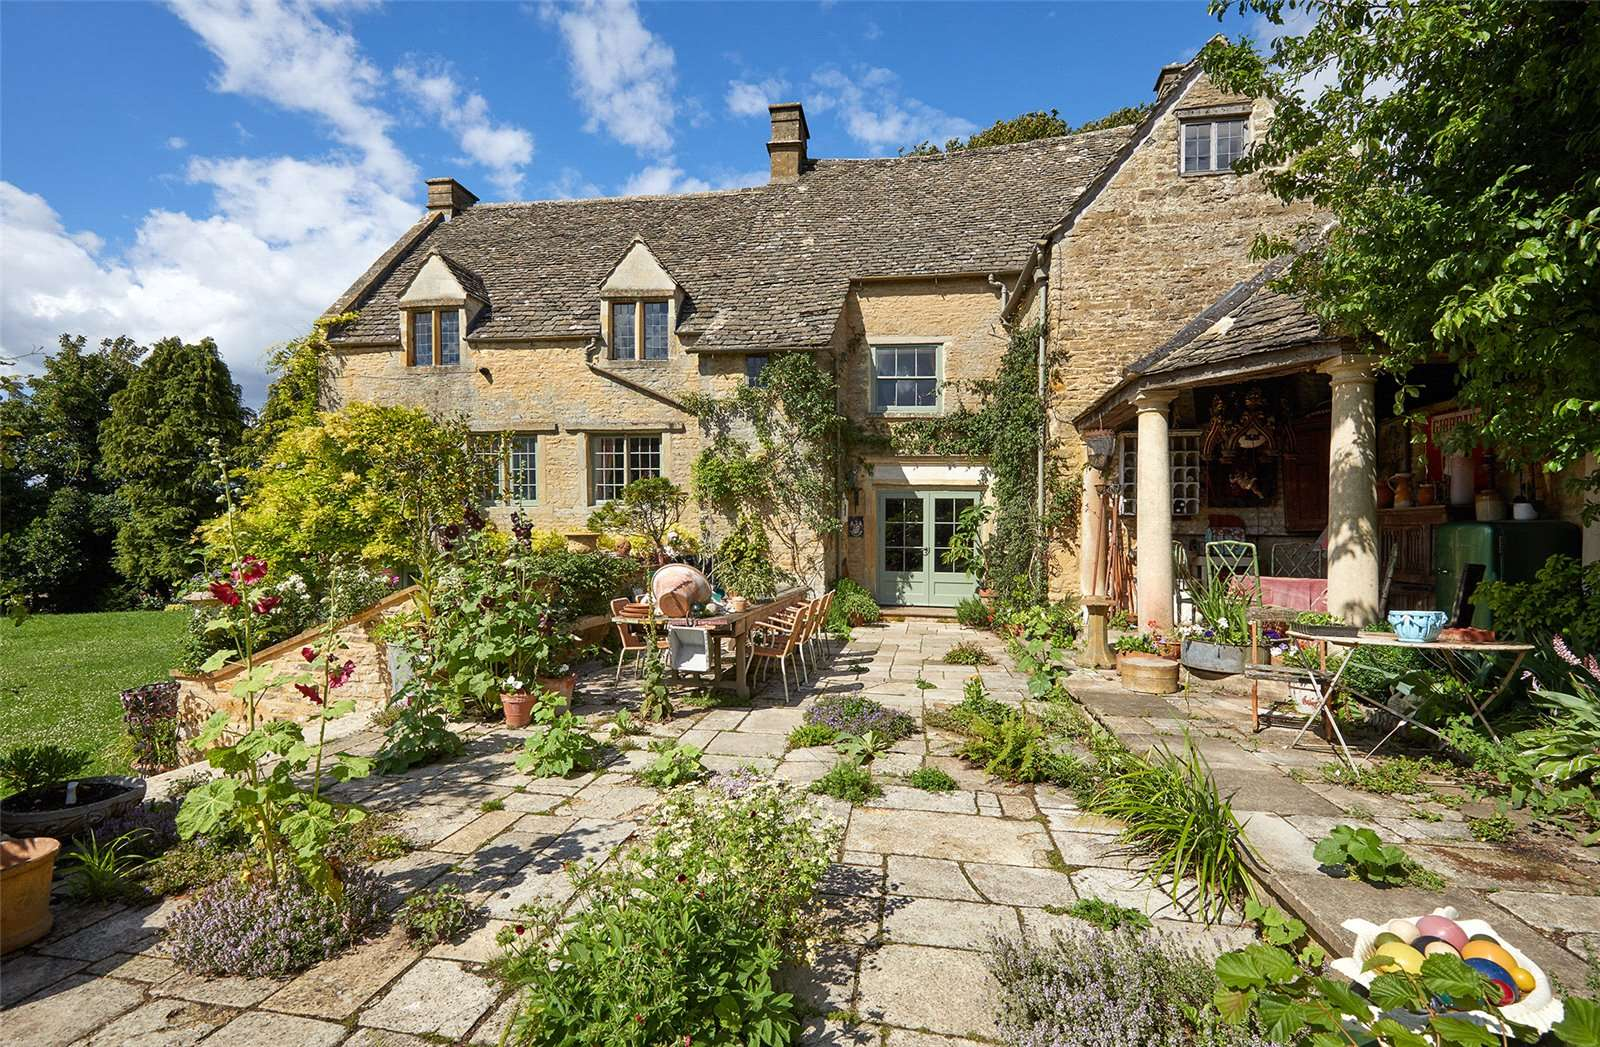 The Manor House, Chipping Norton, Oxfordshire - House